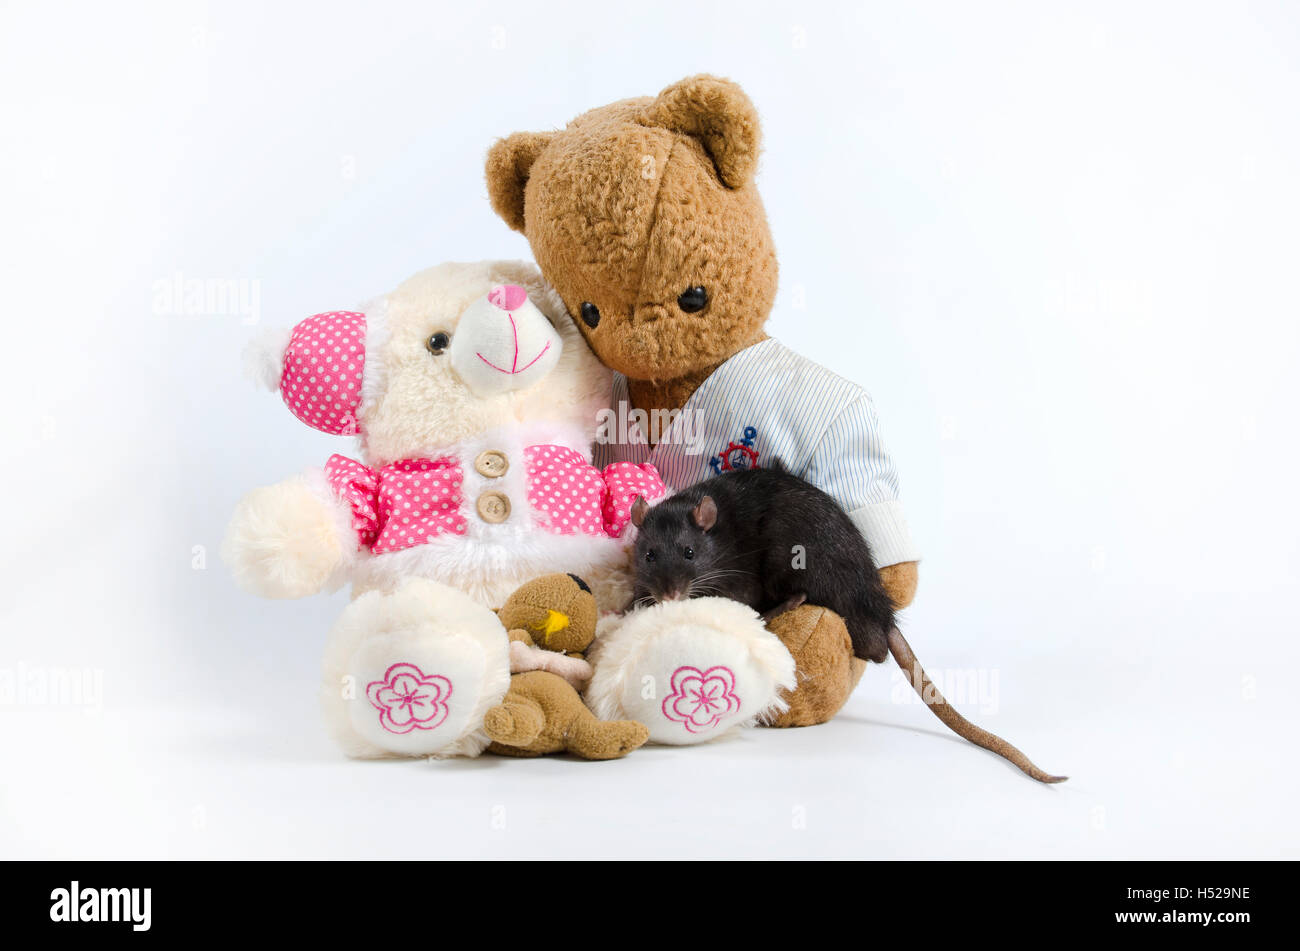 Intelligent and funny pets decorative rat and old soft toys. - Stock Image